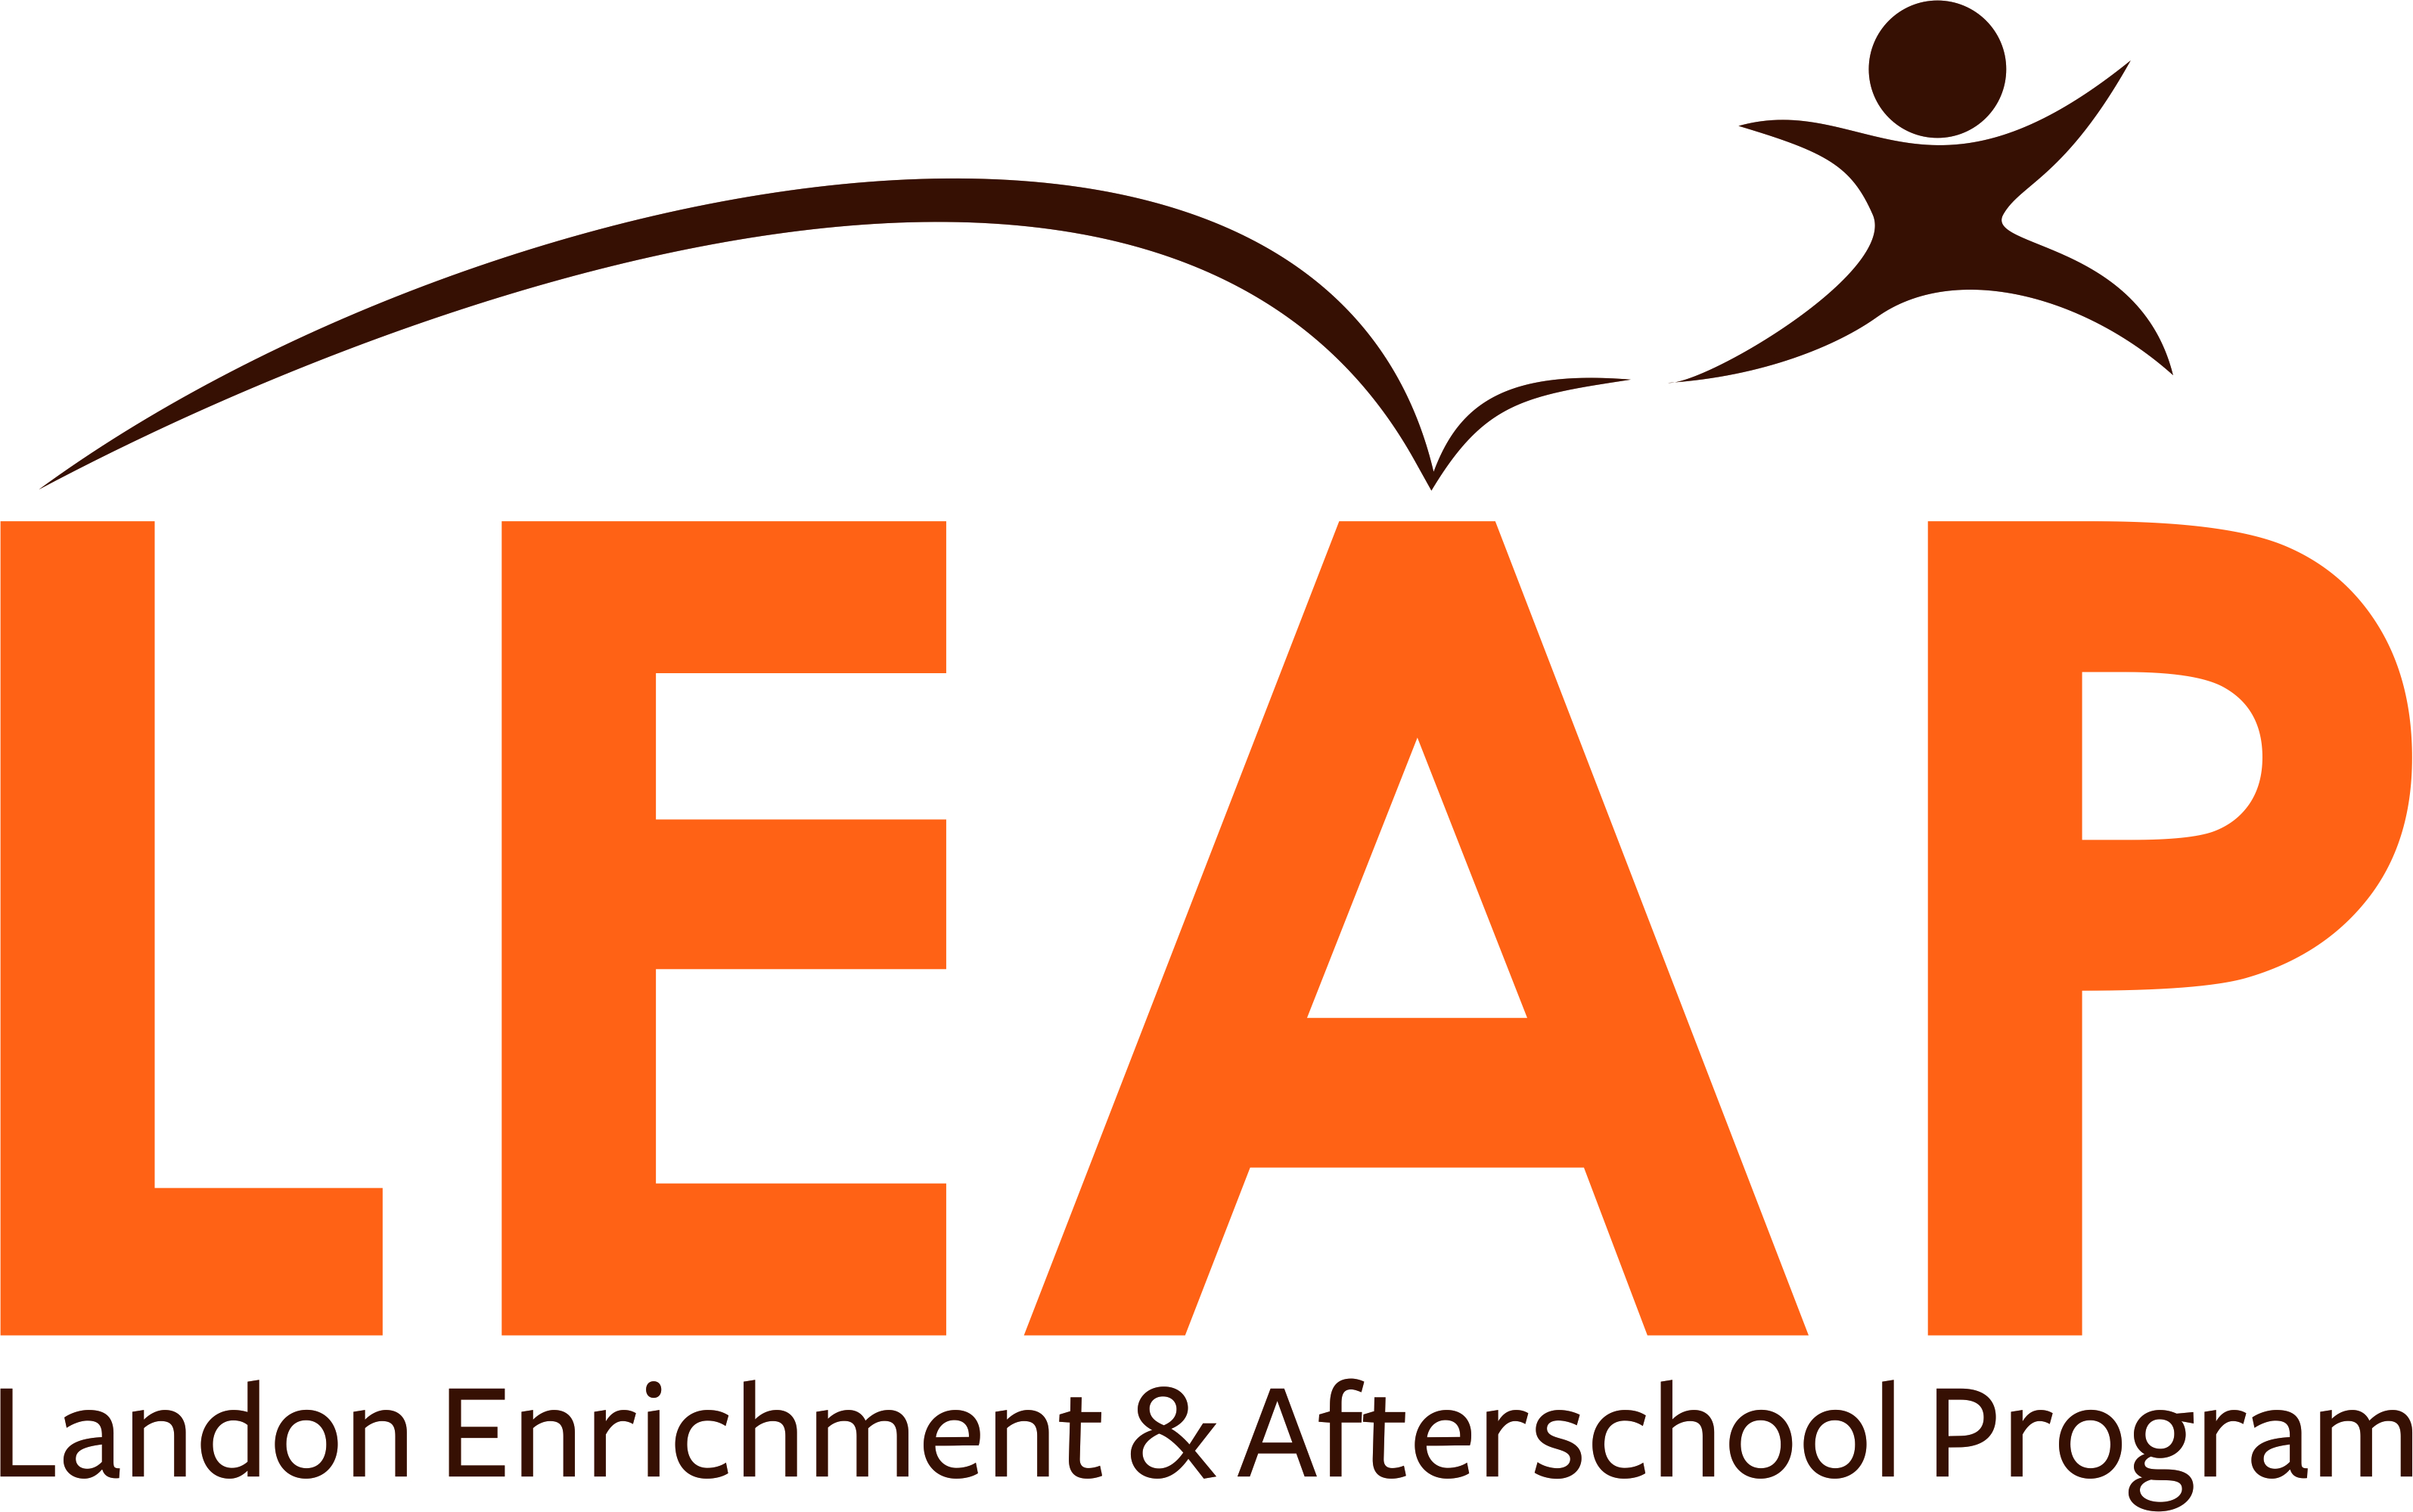 Landon Enrichment & Afterschool Program (LEAP)